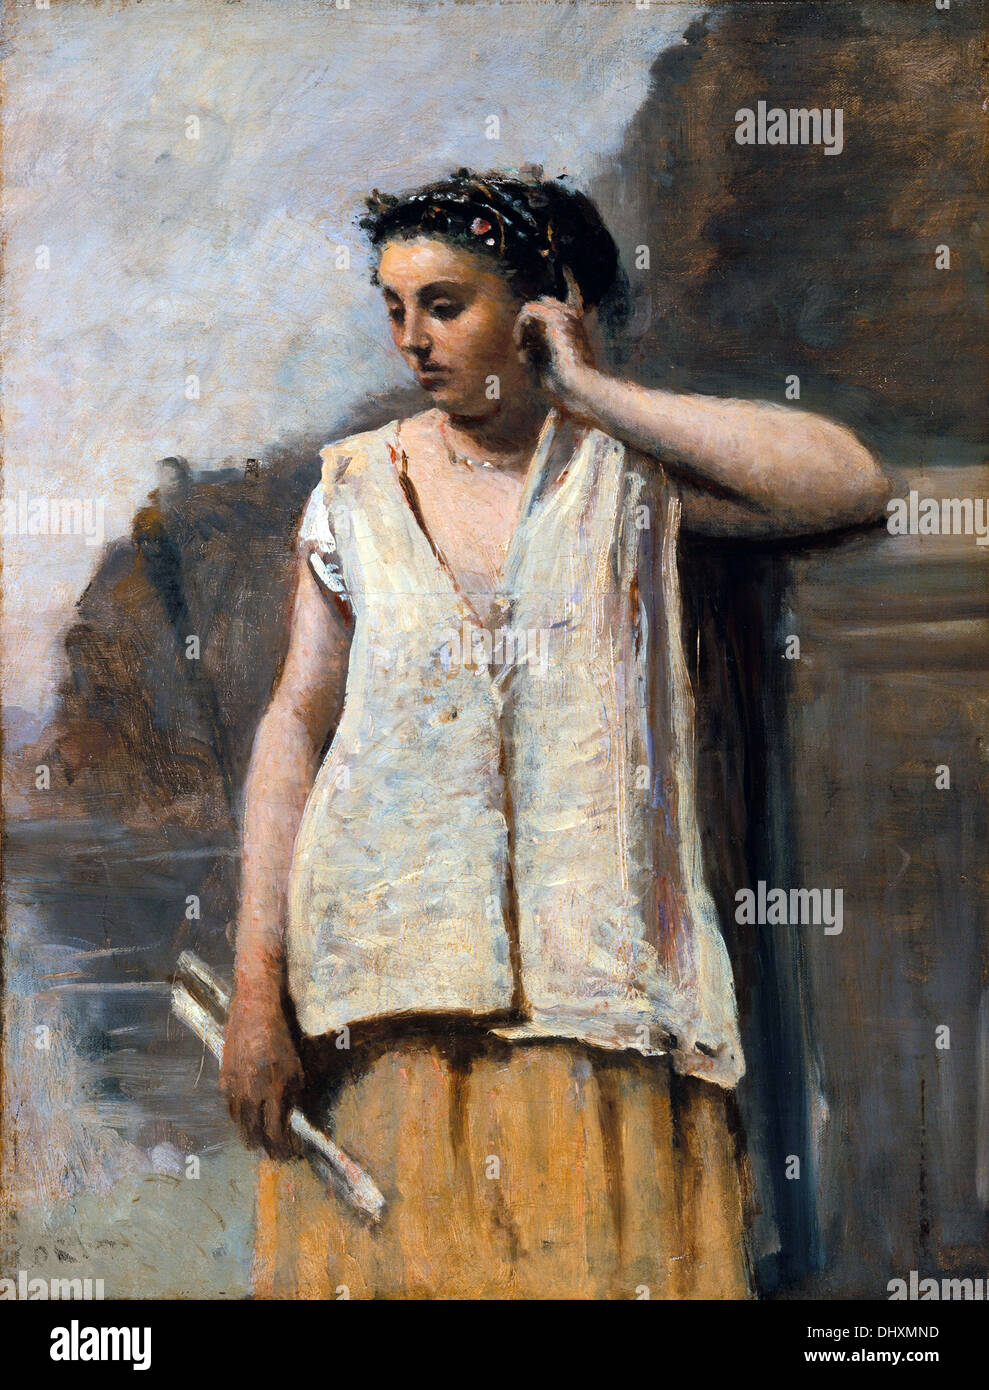 The Muse History - by Camille Corot, 1865 - Stock Image